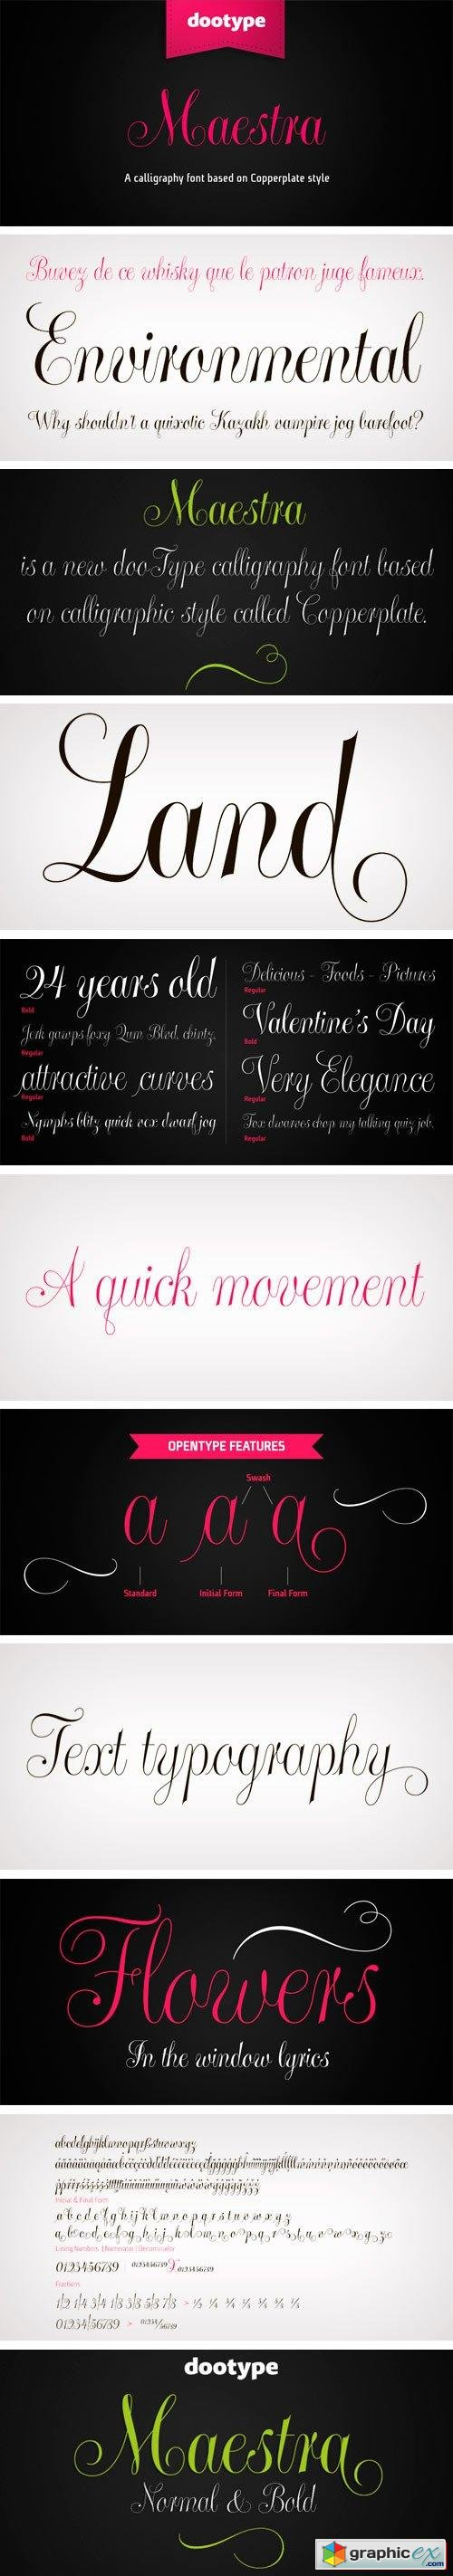 Maestra Font Family - 2 Fonts $45